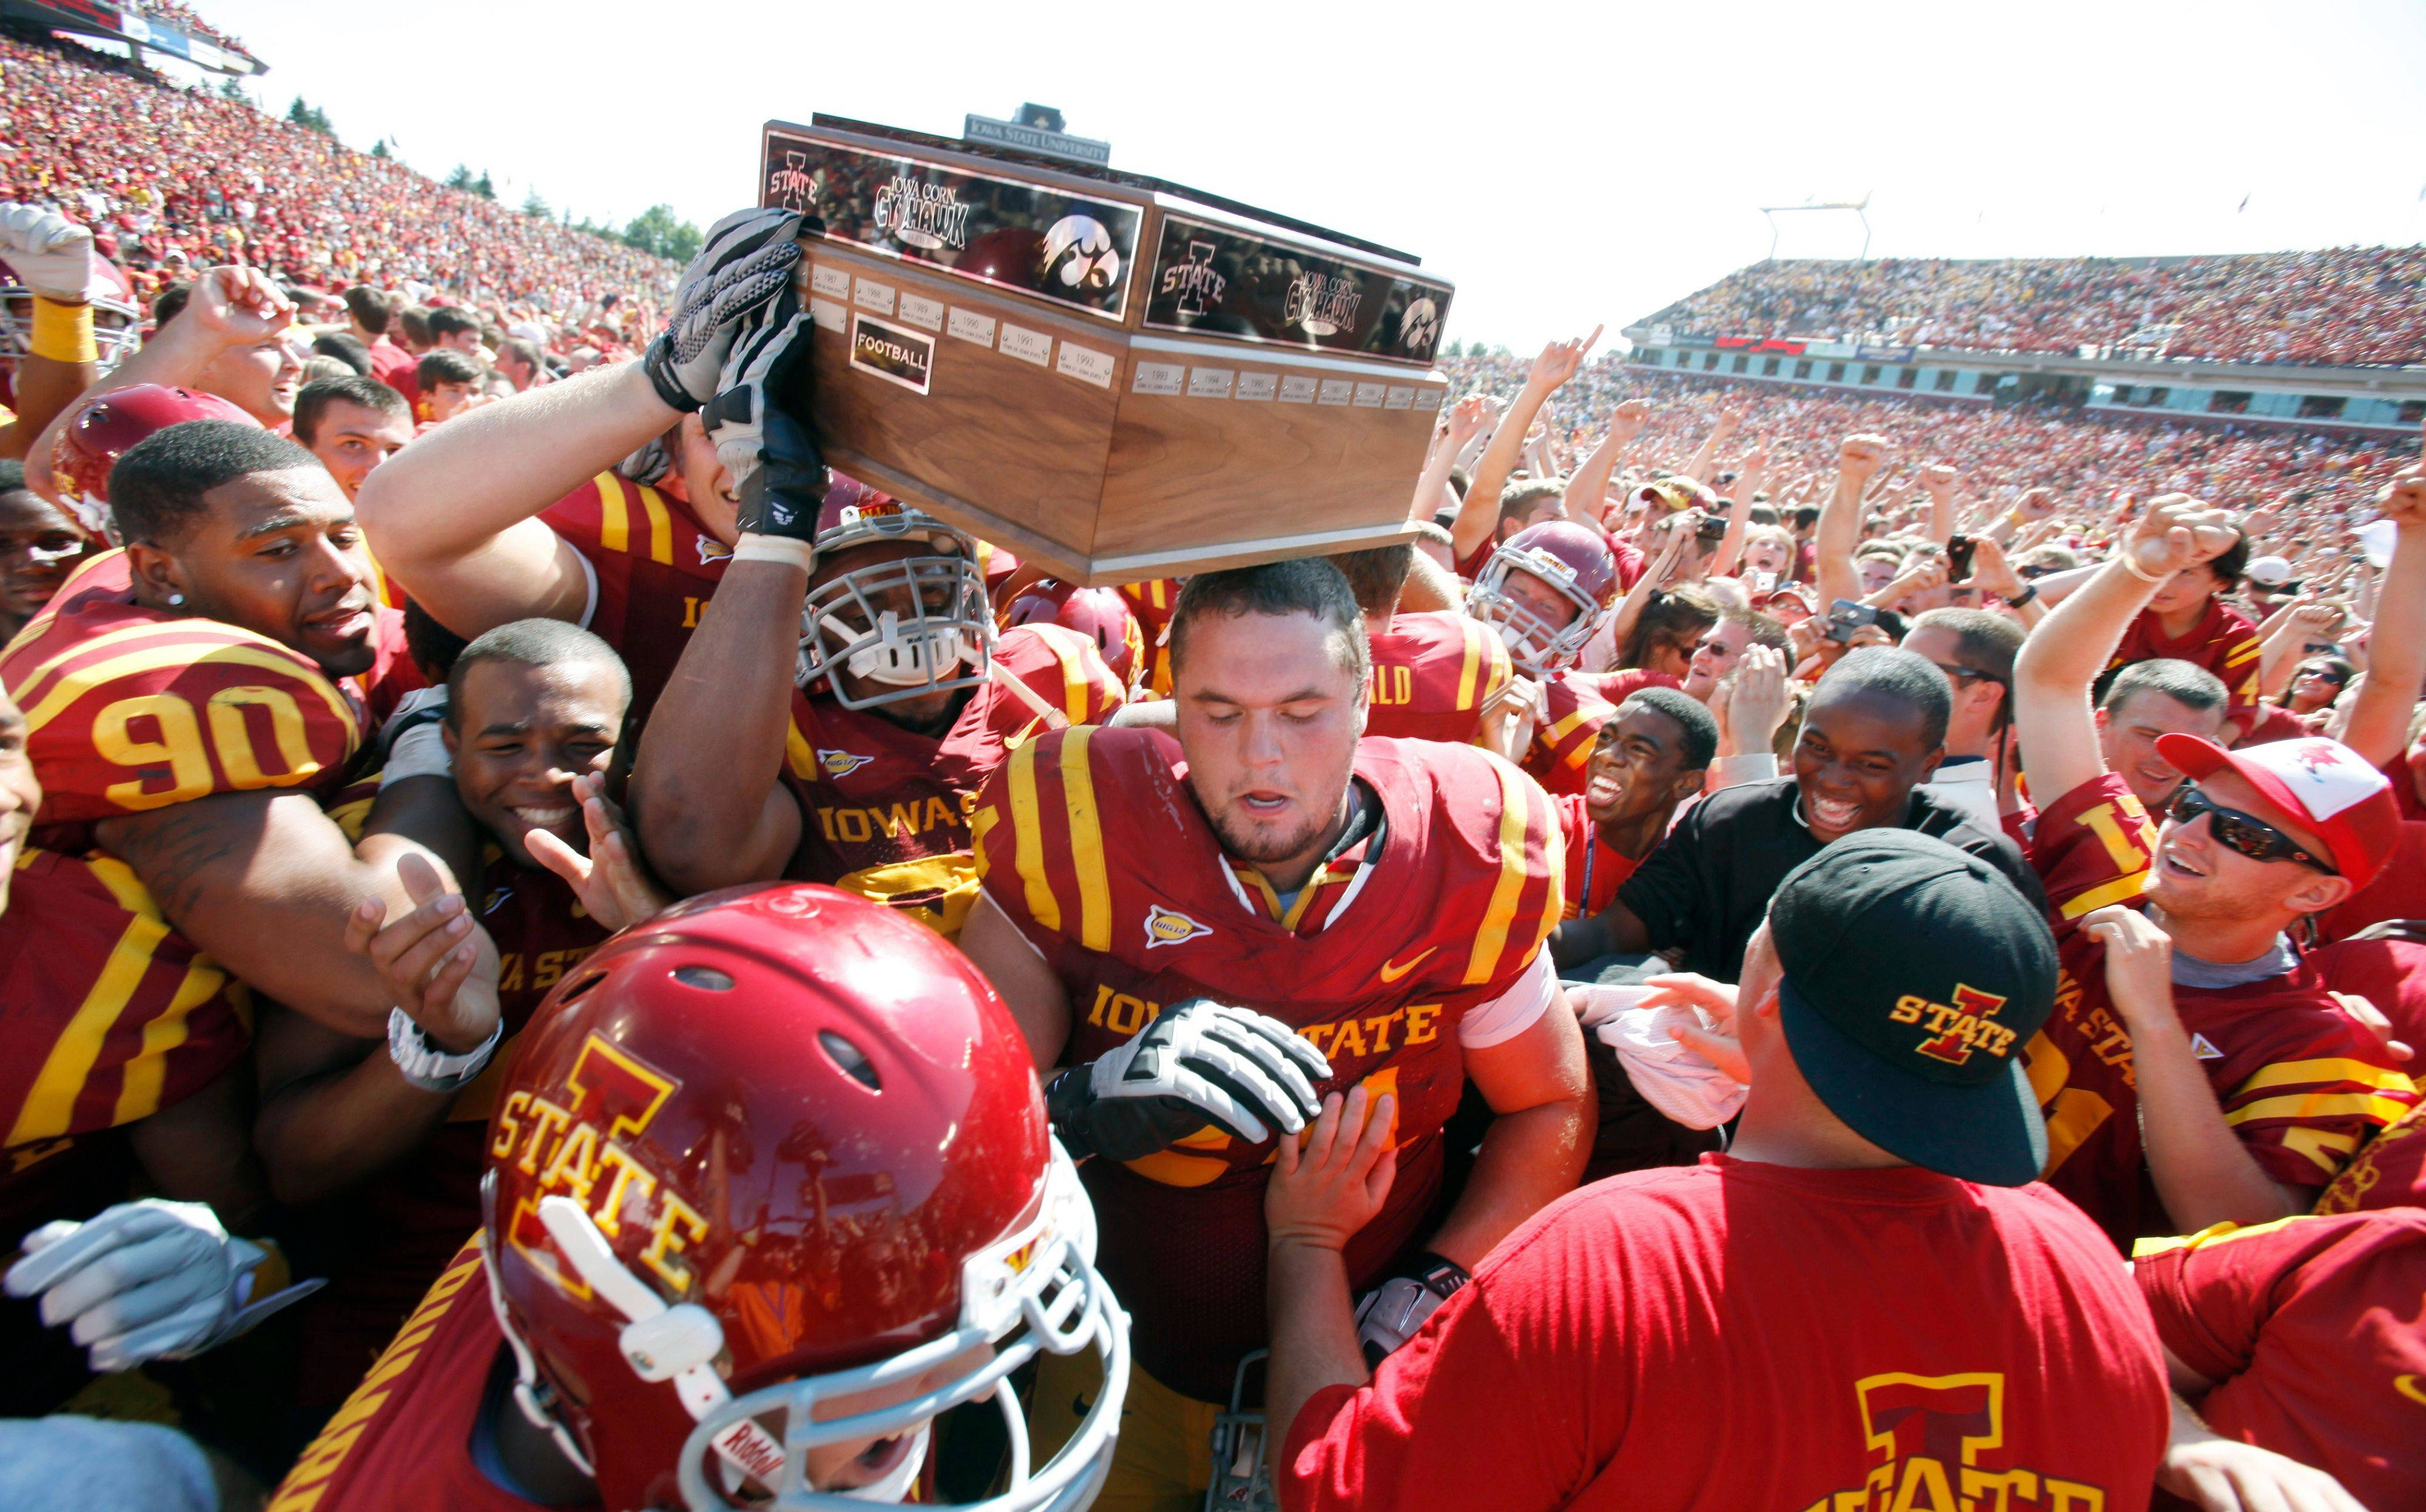 Iowa State players celebrate with fans after their 44-41 triple-overtime win over Iowa Saturday in Ames, Iowa.